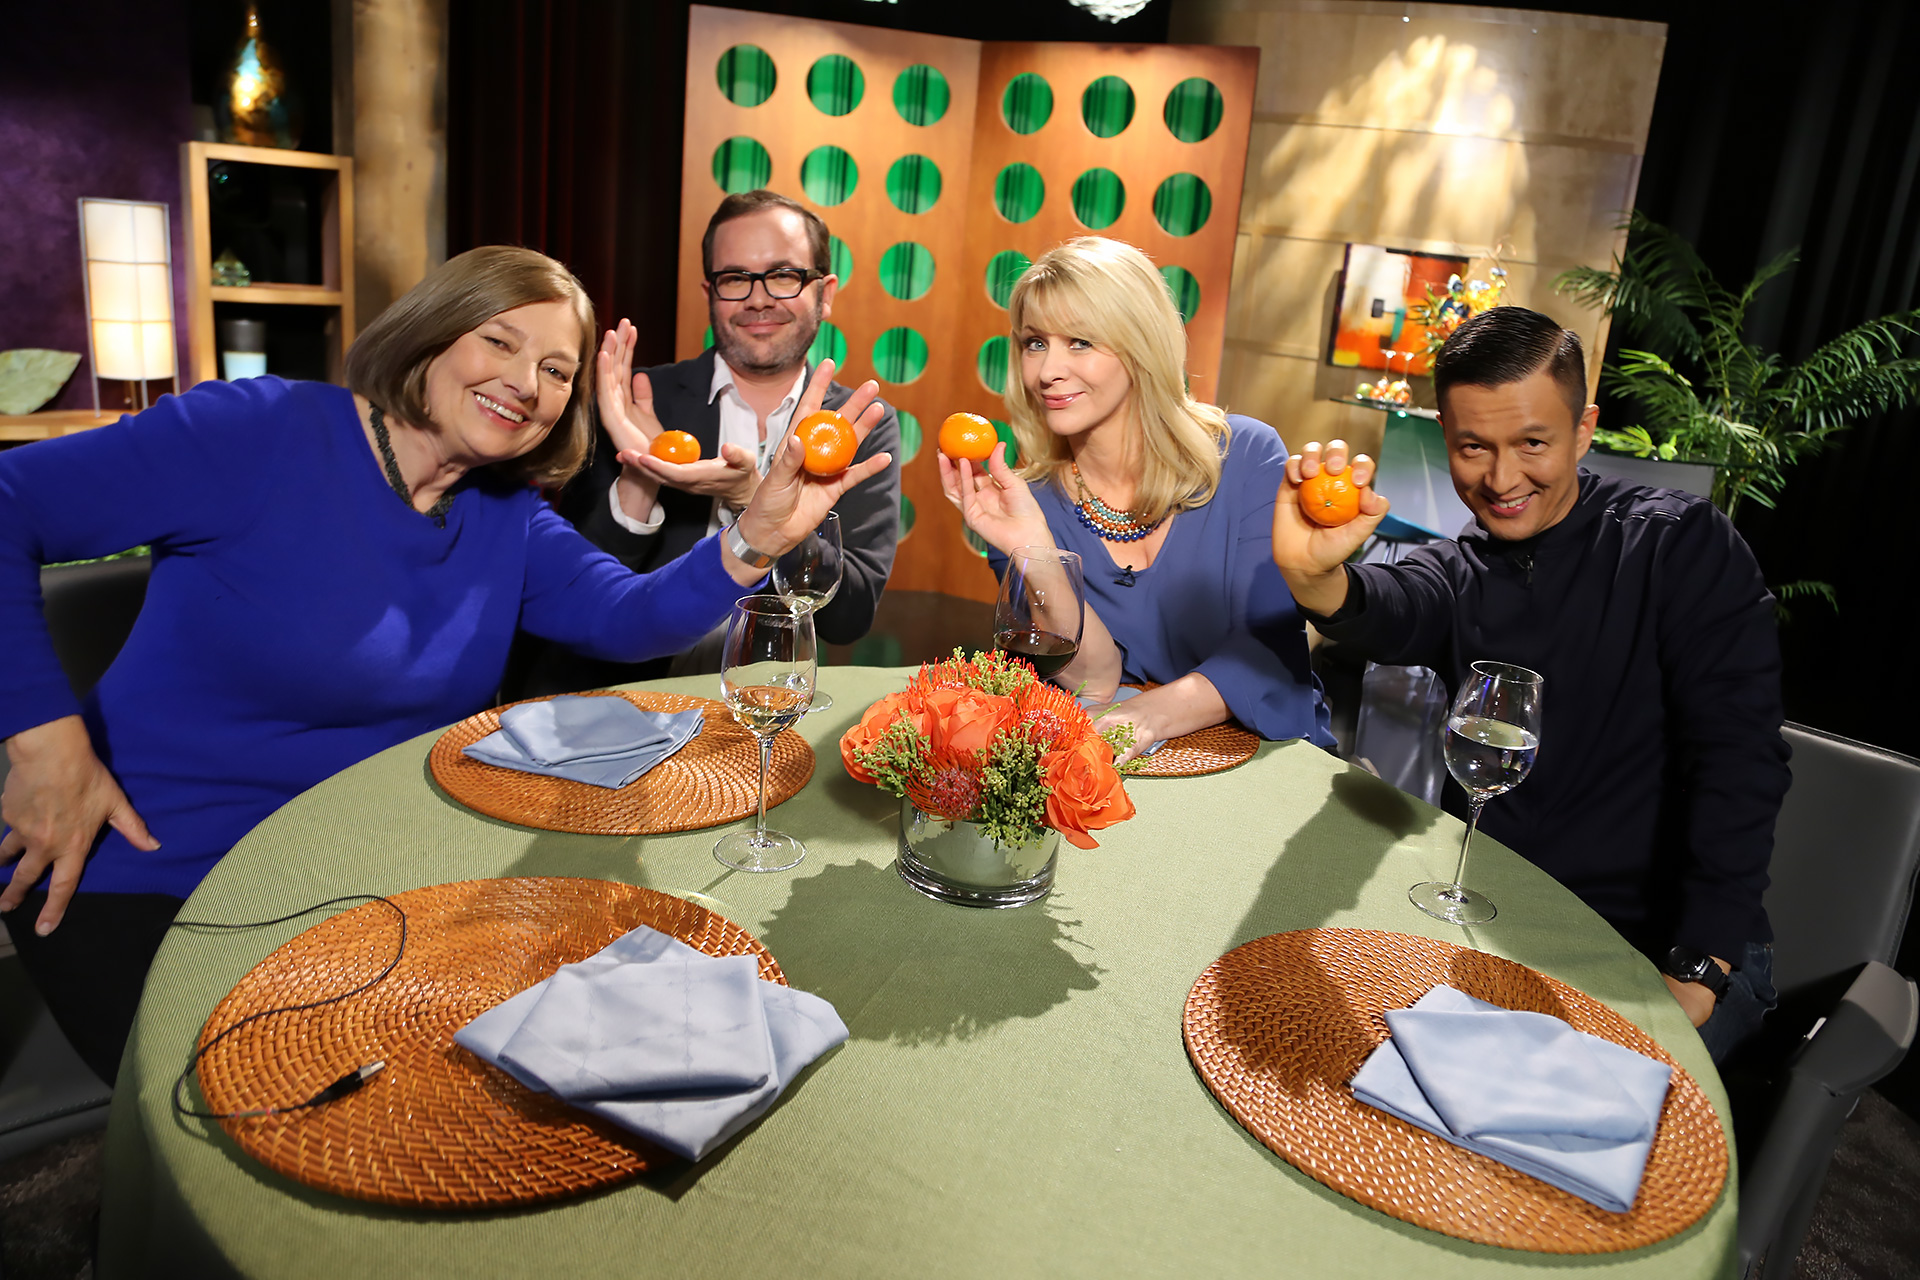 Host Leslie Sbrocco and guests having fun on the set of season 13 episode 4.